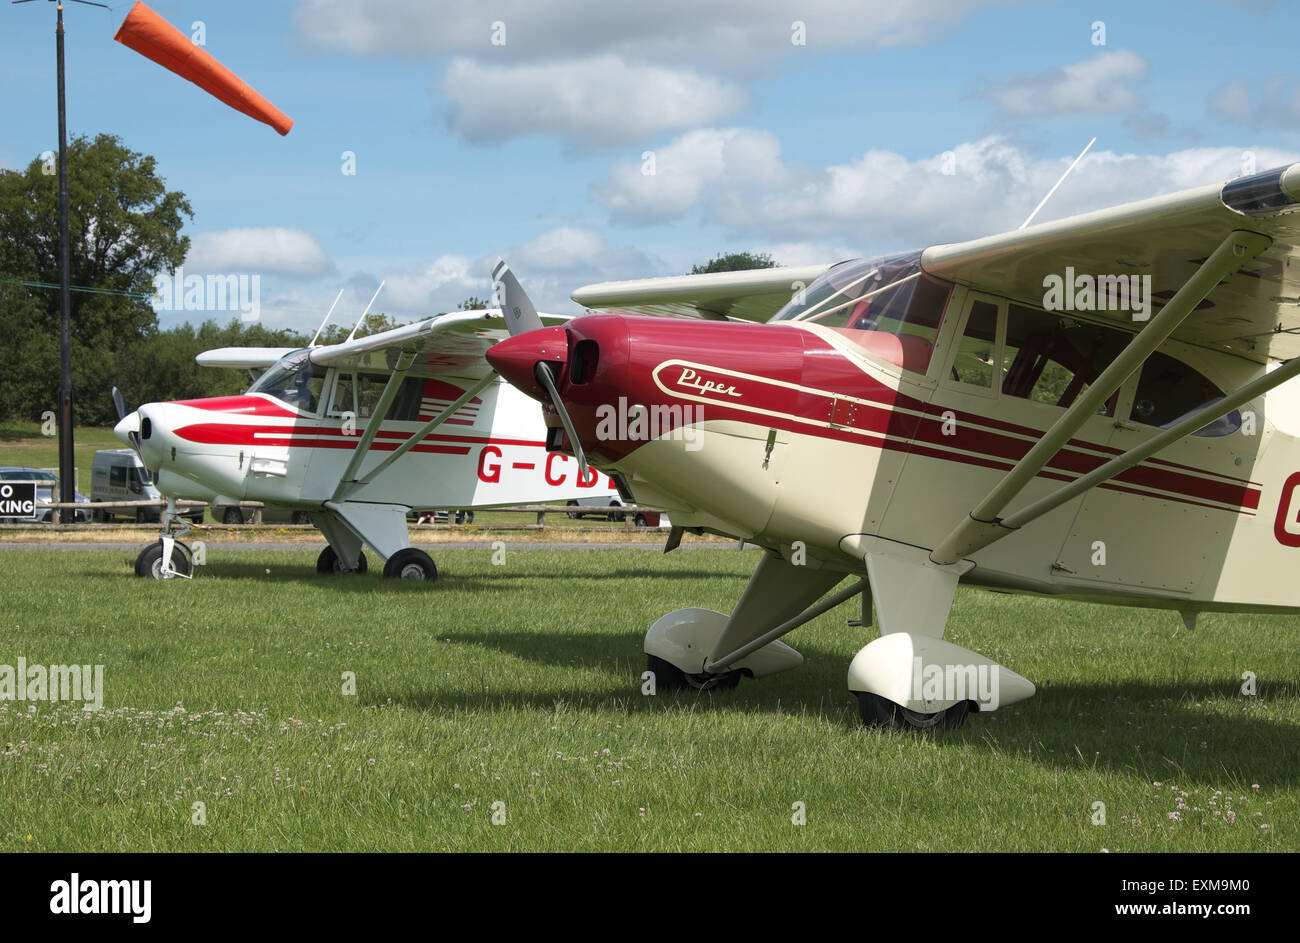 Vintage Piper Pa-22 Tri-Pacer and Colt ( to rear ) aircraft built